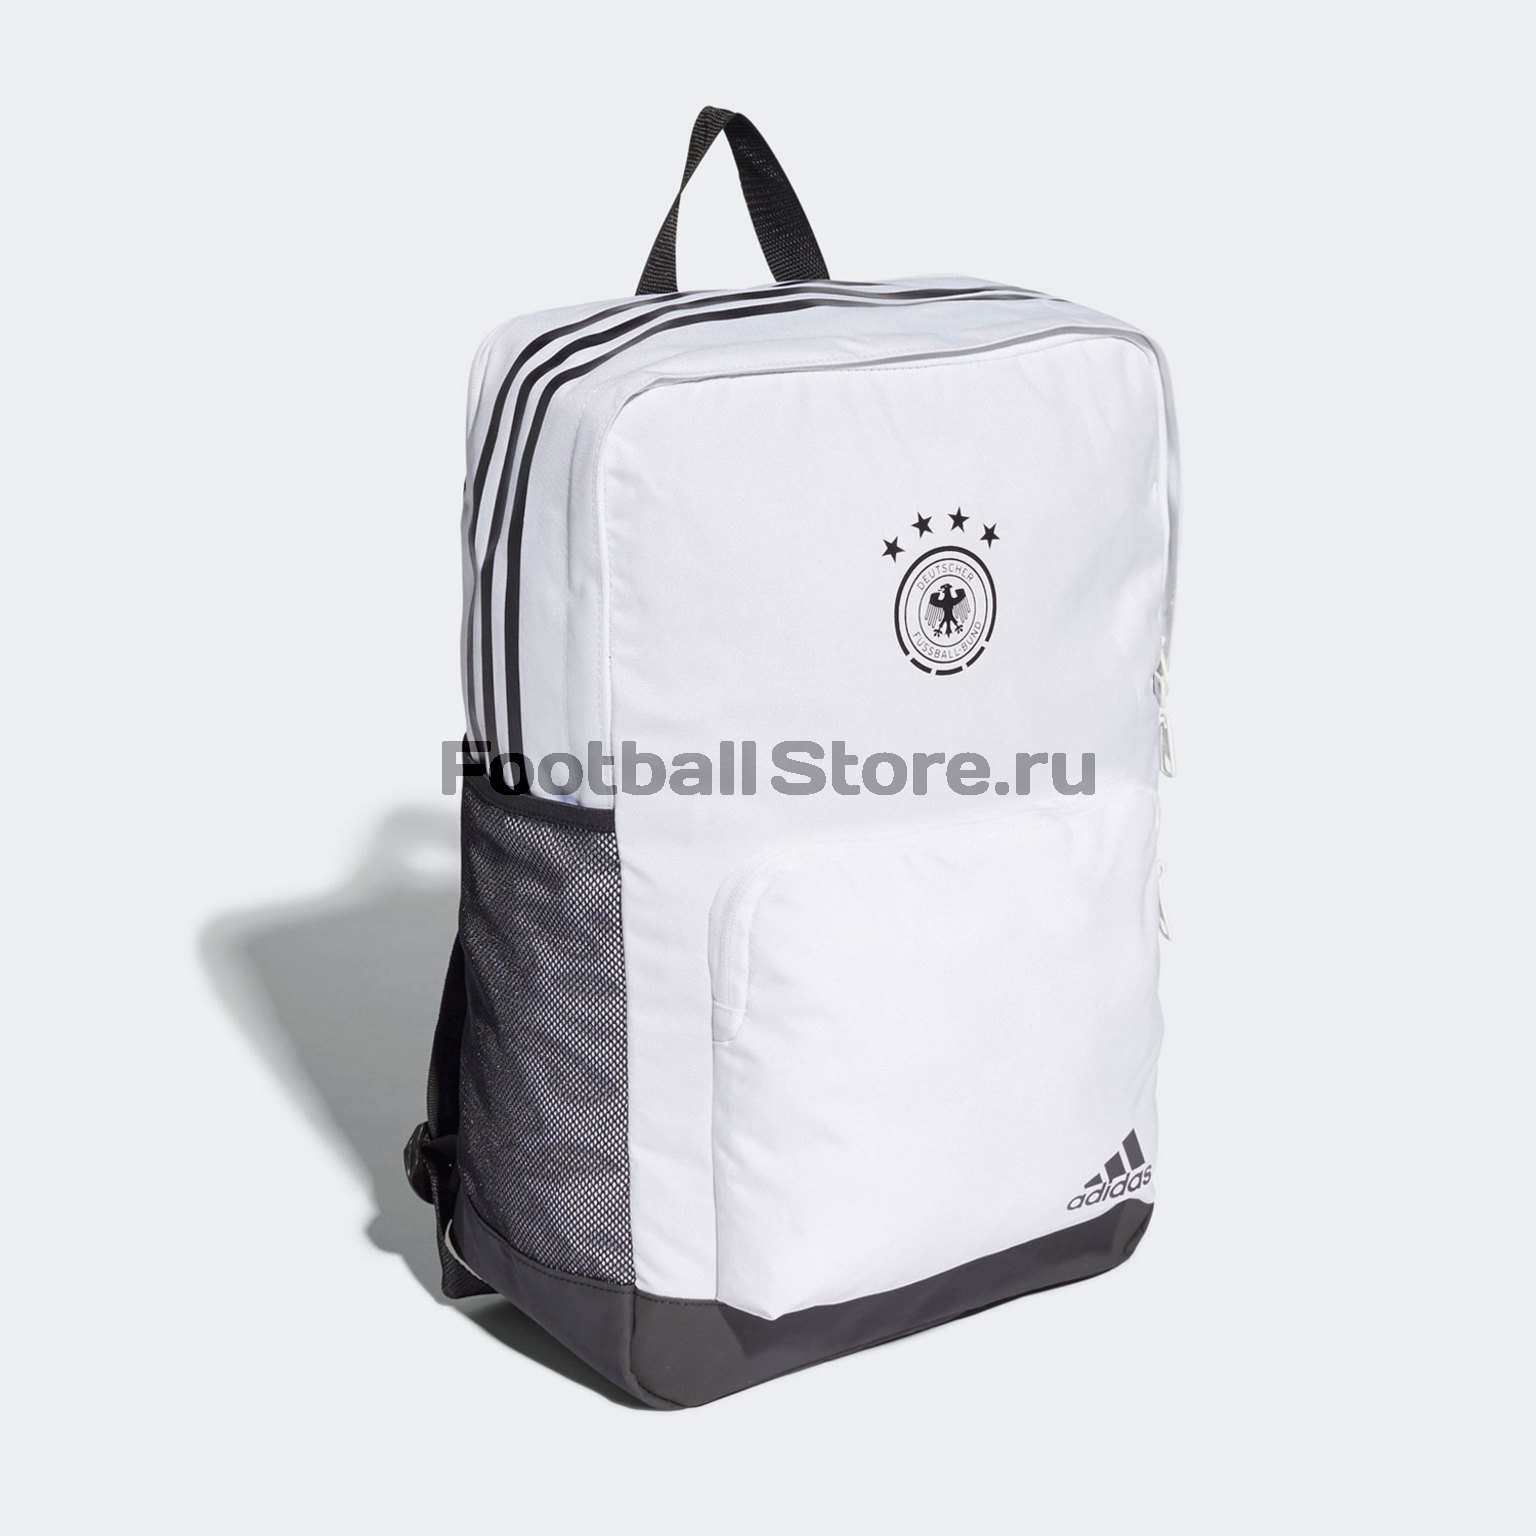 Рюкзак Adidas Germany Backpack CF4941 рюкзак adidas germany backpack cf4941